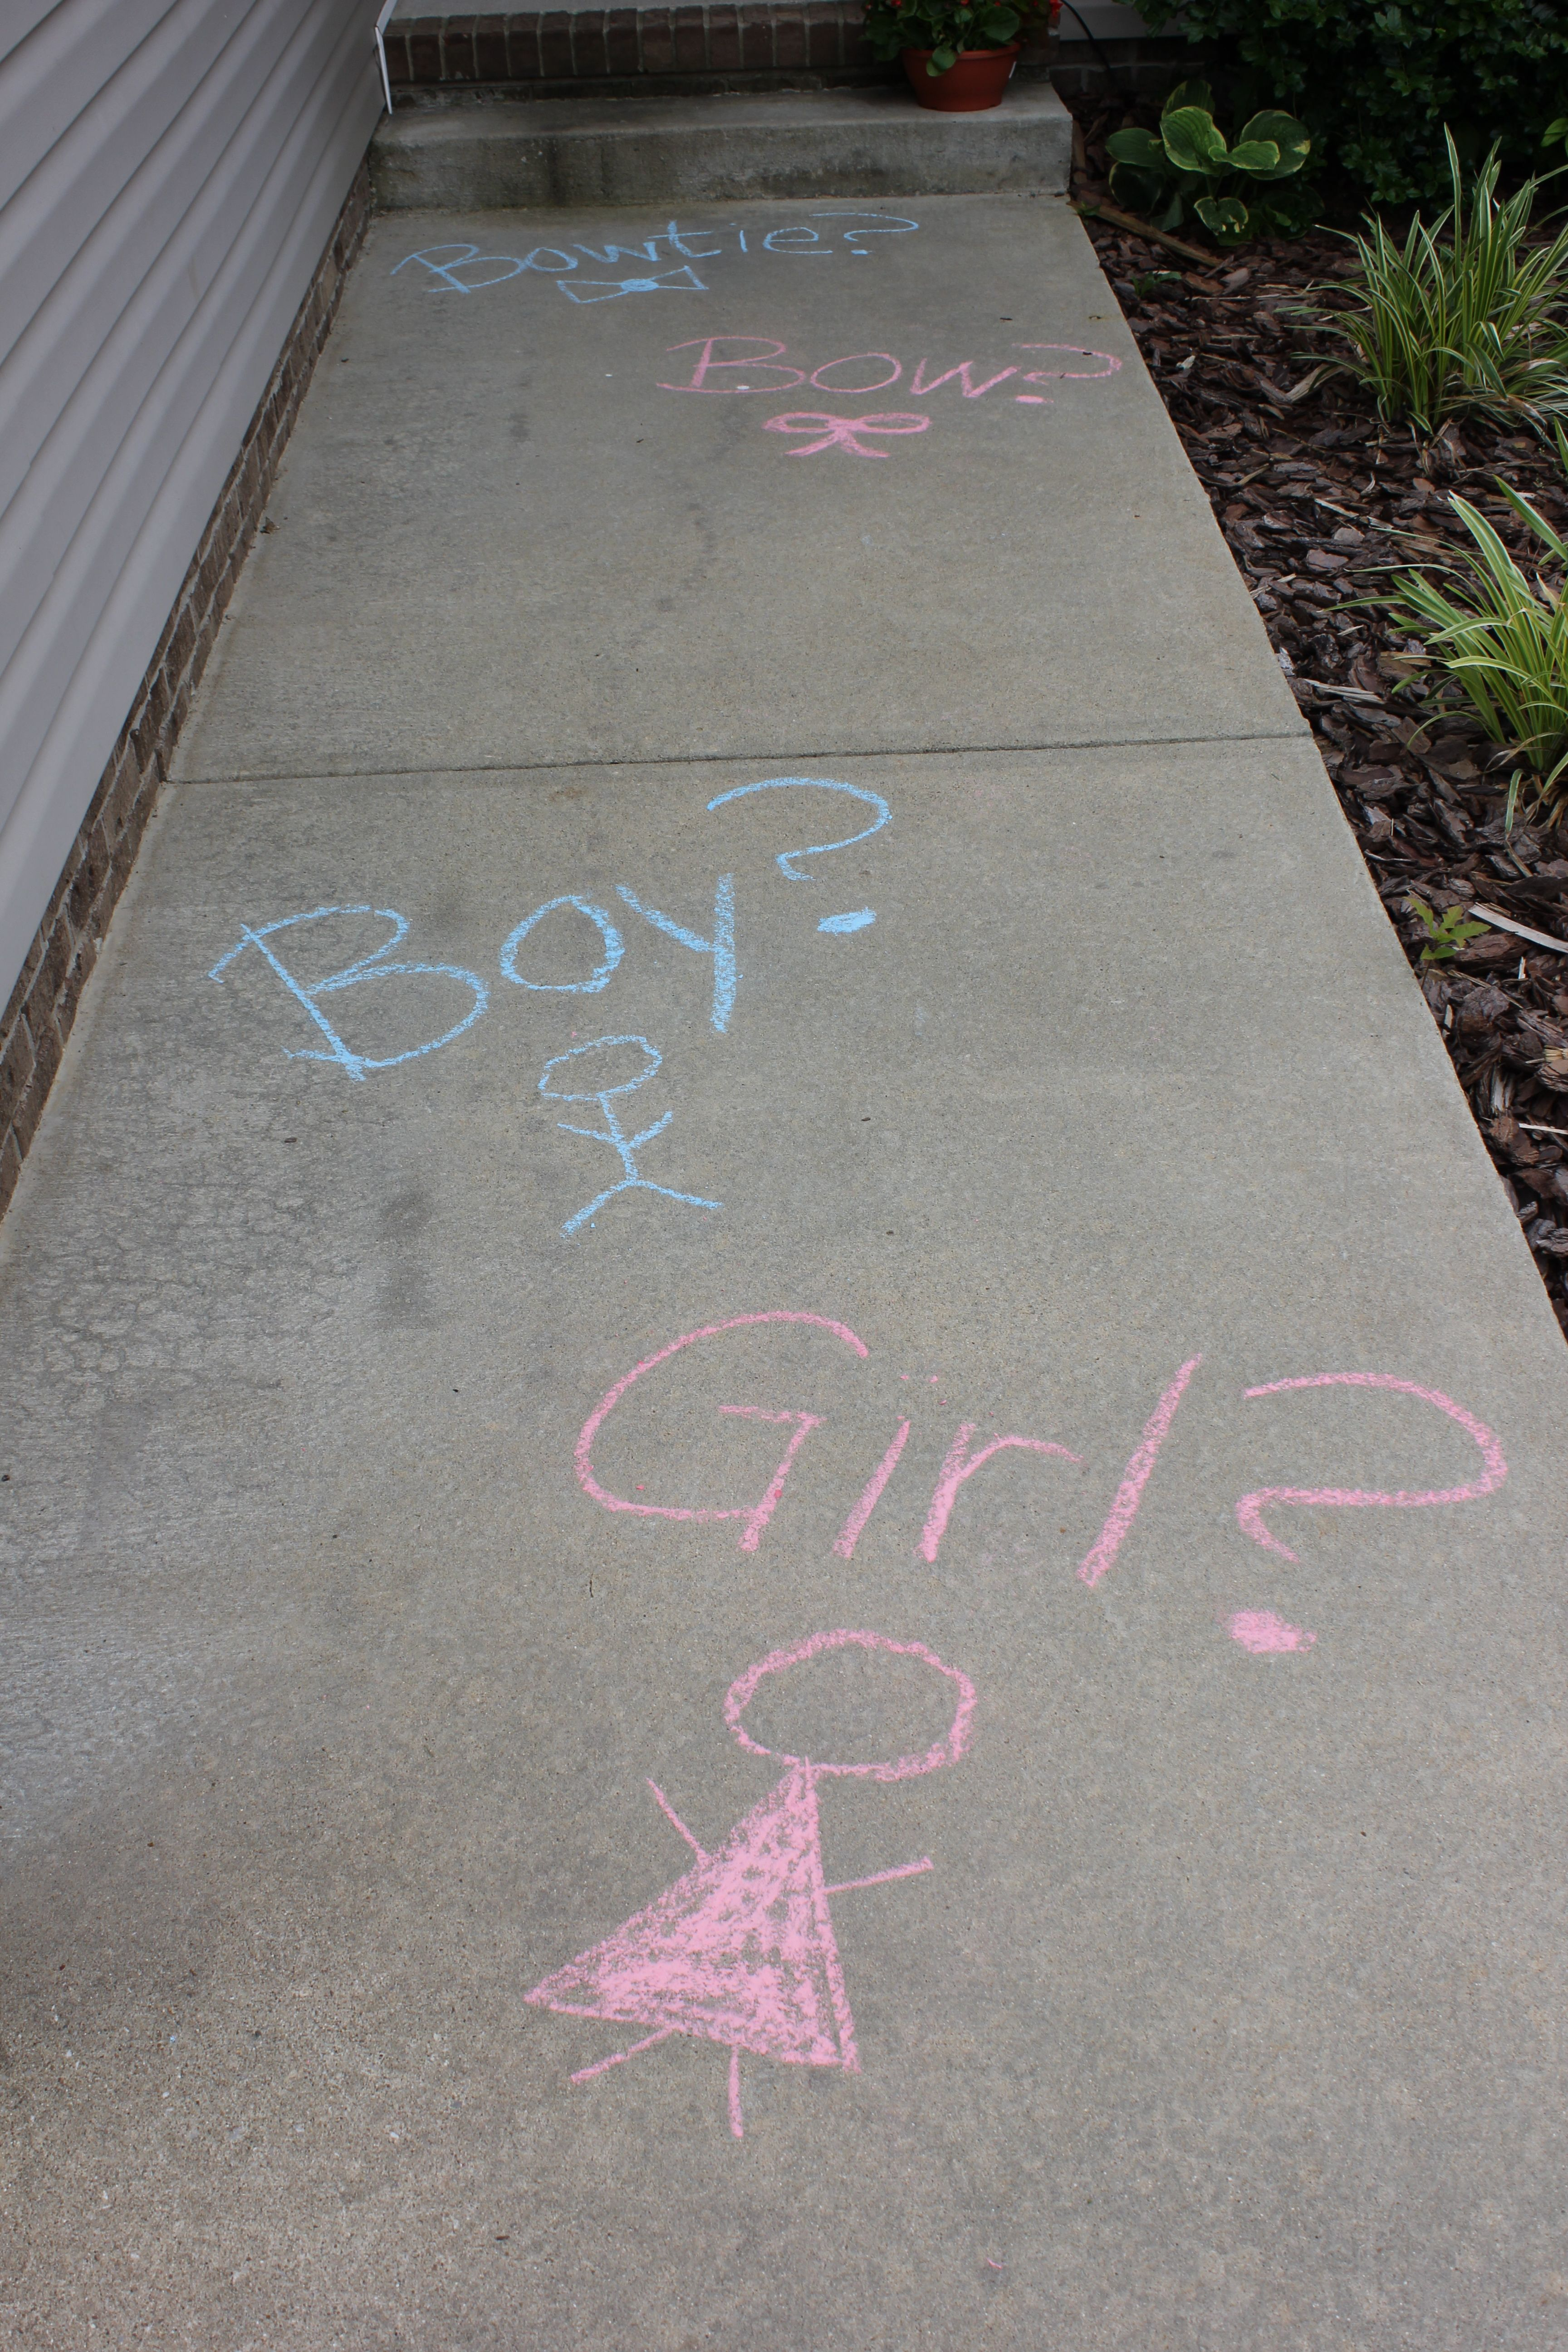 Chalk front entrance pic team beau or team bow with boy girl chalk front entrance pic team beau or team bow with boy girl symbols boy buycottarizona